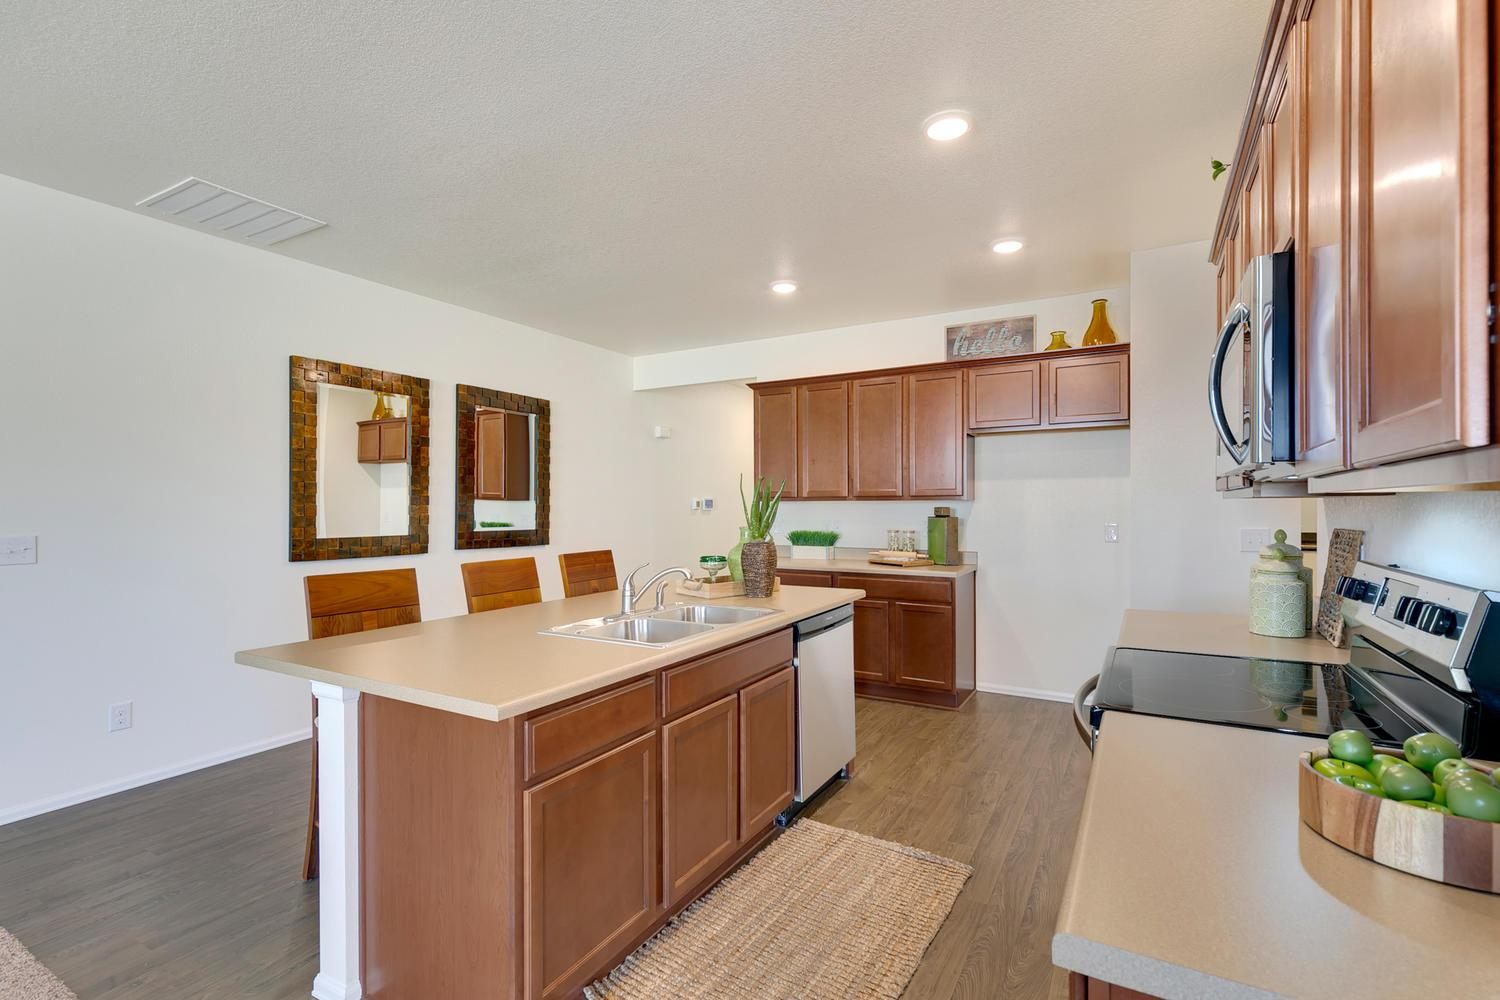 Kitchen featured in the ORCHARD By D.R. Horton in Denver, CO